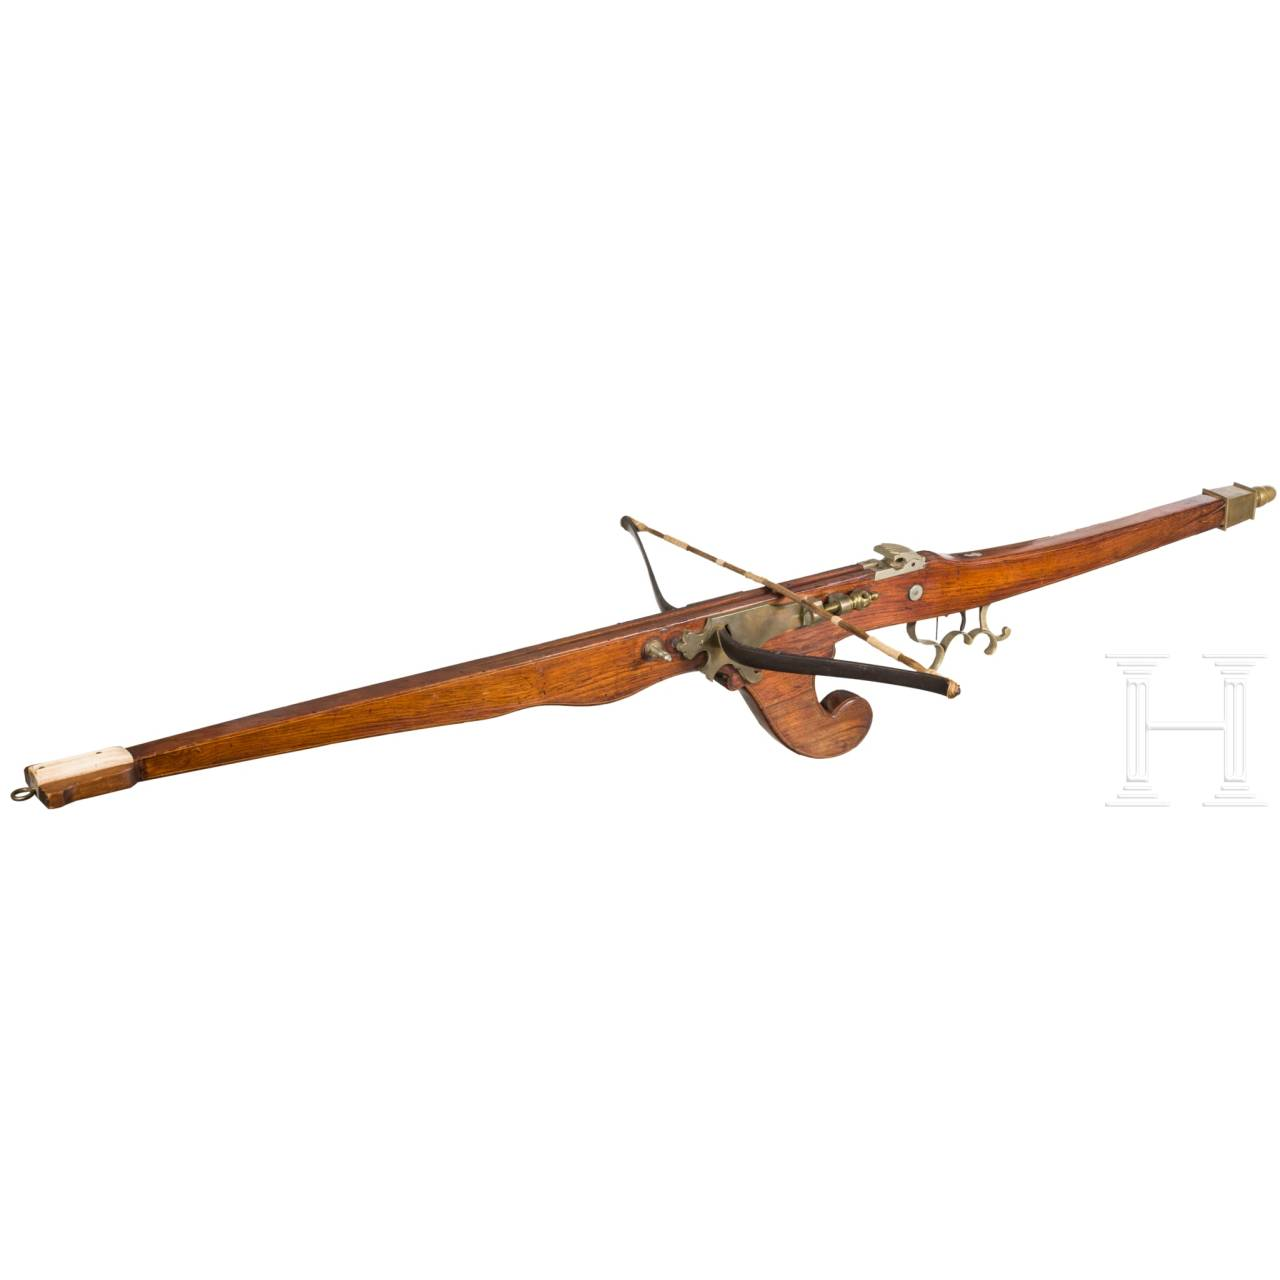 A Belgian/French target crossbow, circa 1900